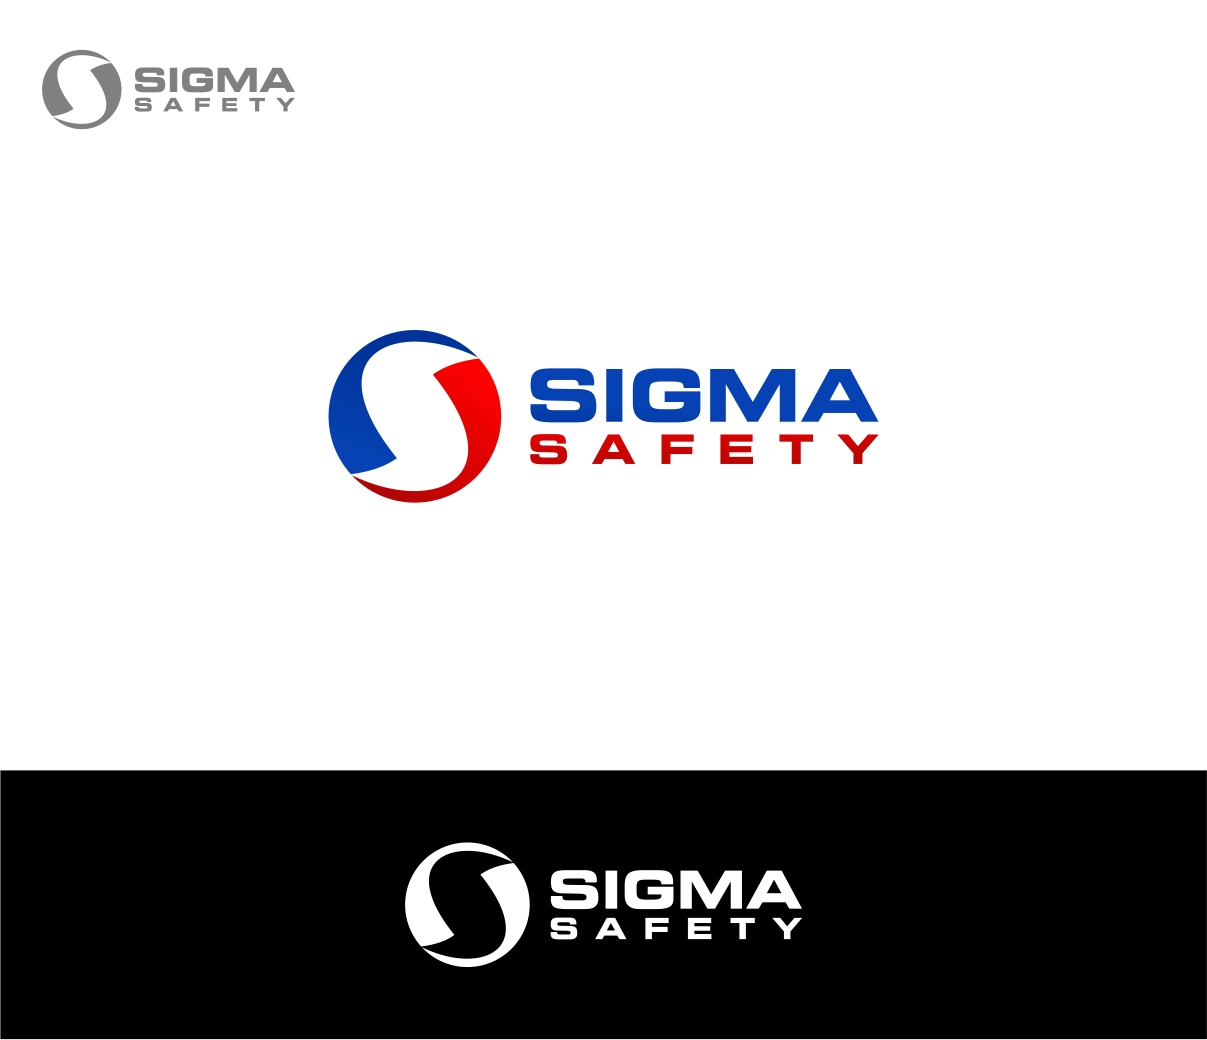 Logo Design by haidu - Entry No. 50 in the Logo Design Contest Creative Logo Design for Sigma Safety Corporation.